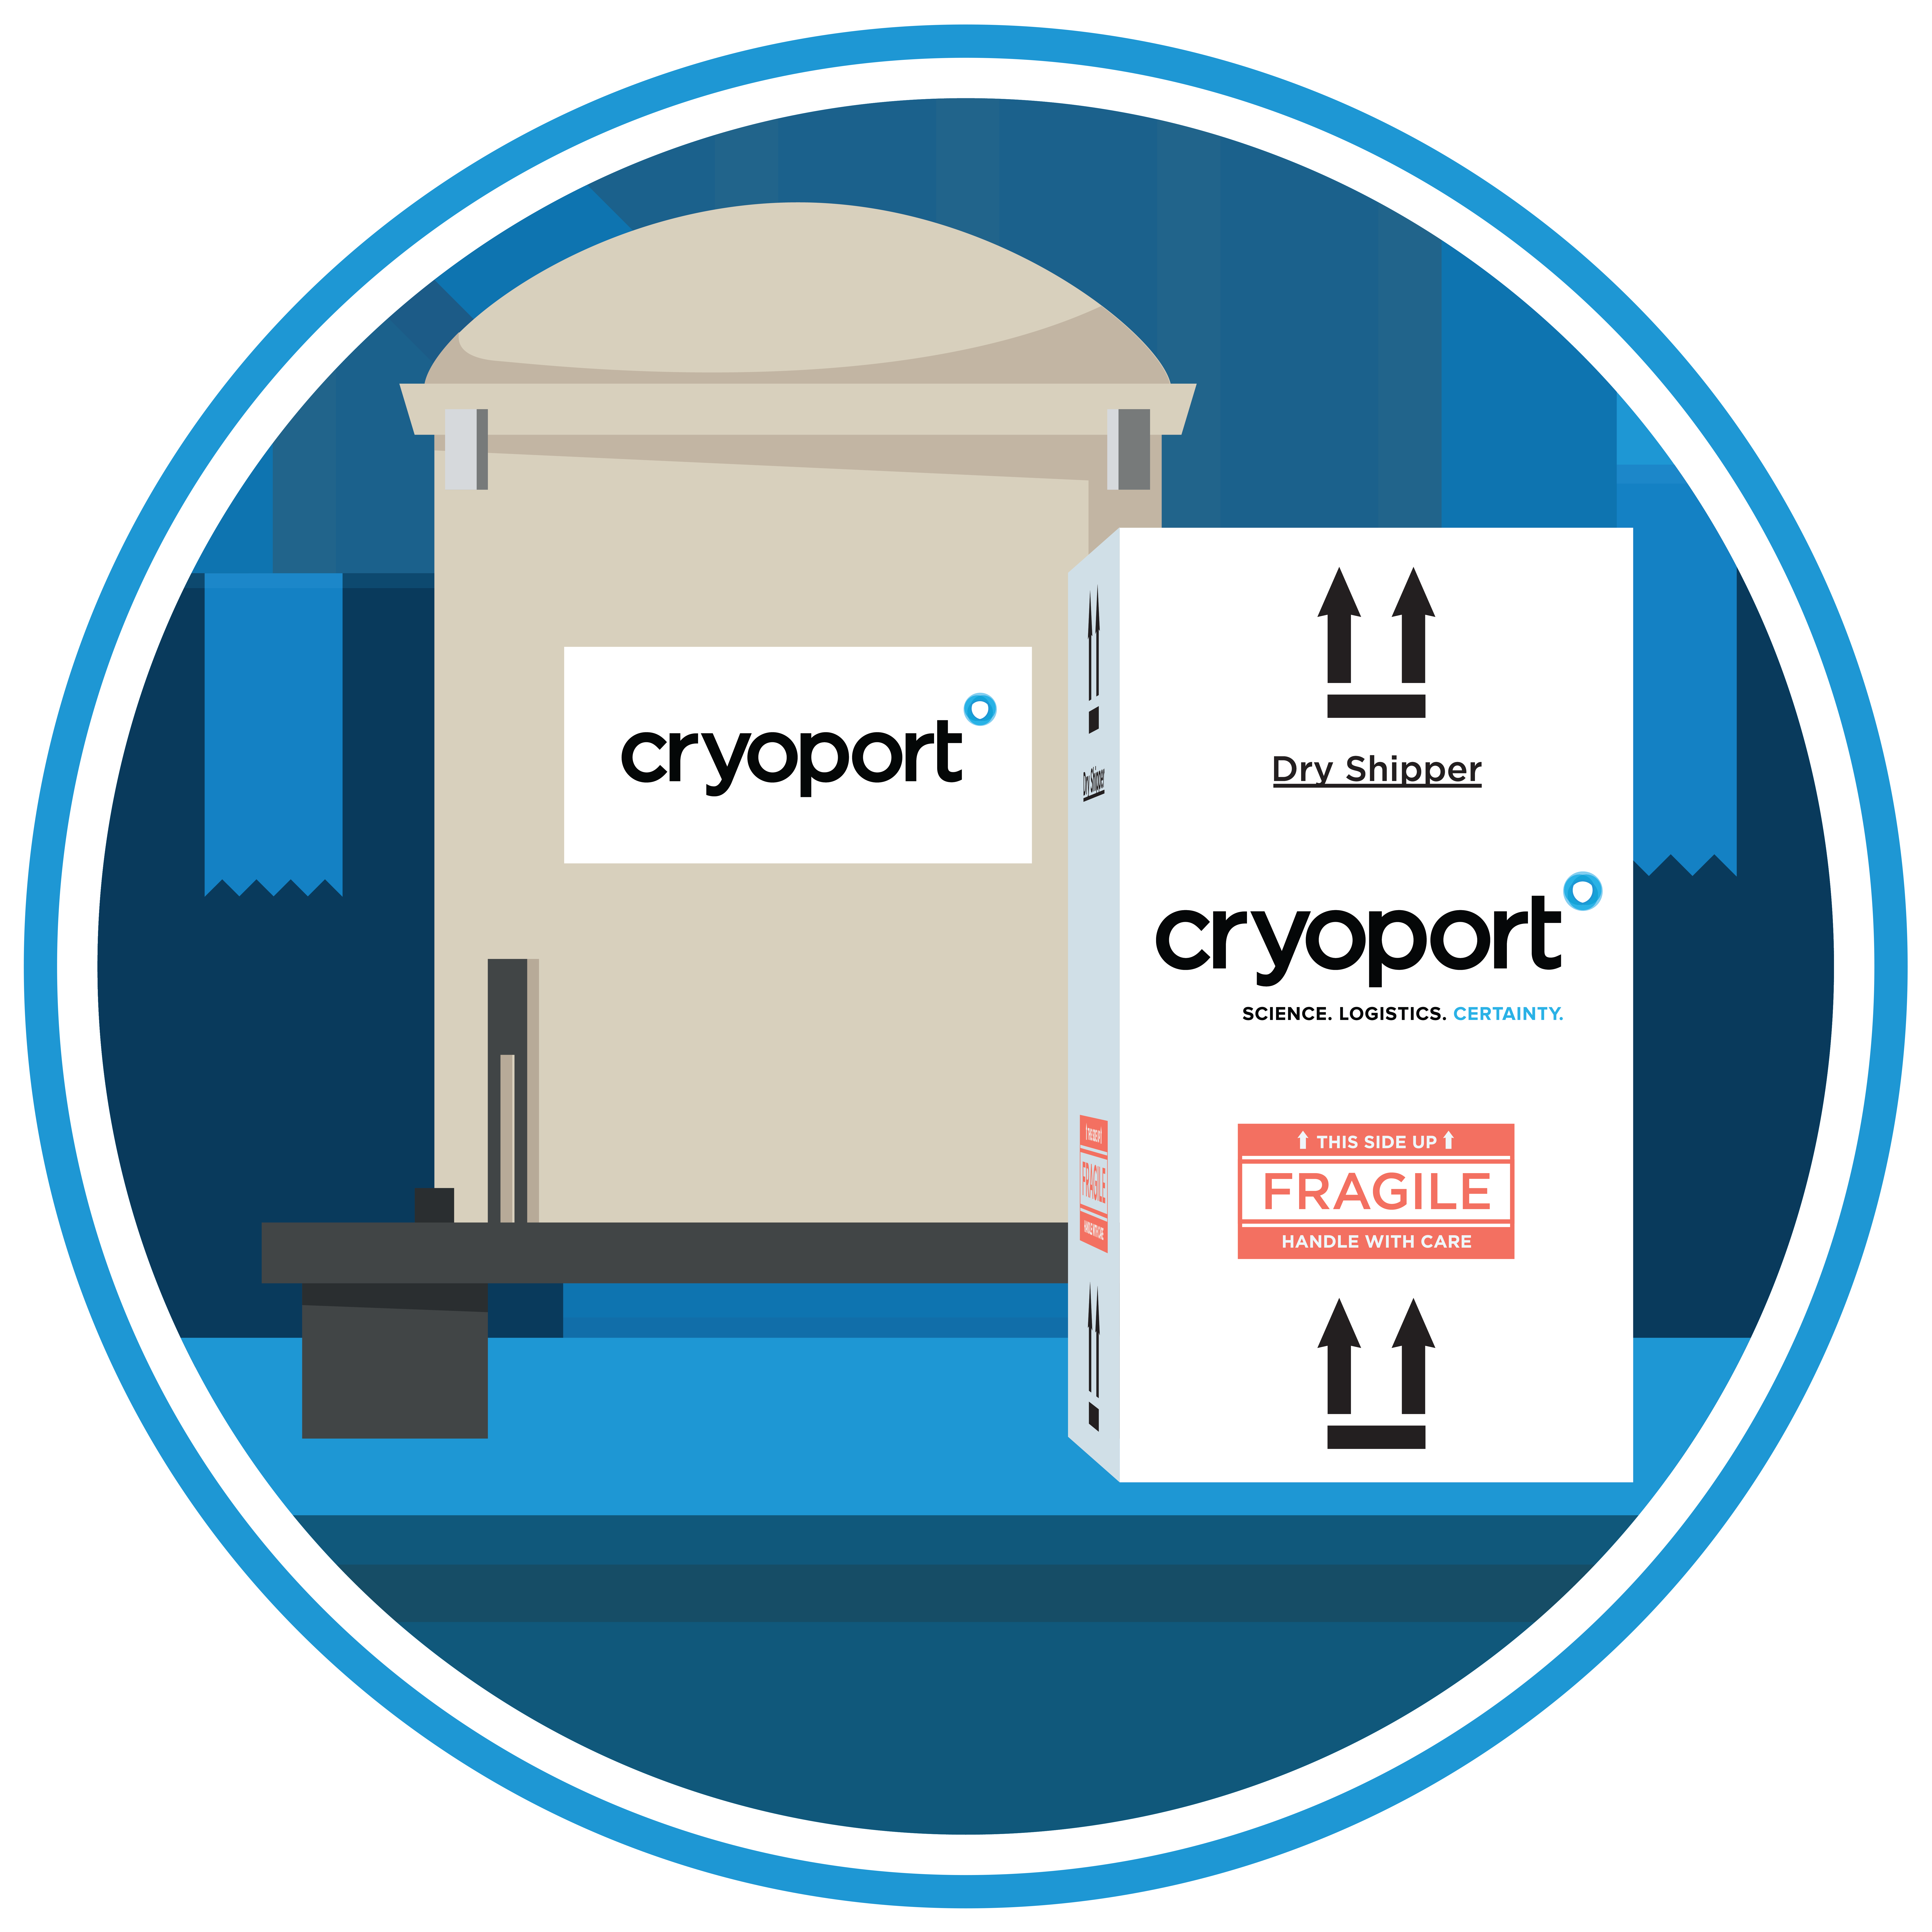 SteadfastProtectionPageGraphic_CryoportExpress-nocopy cropped-1.png